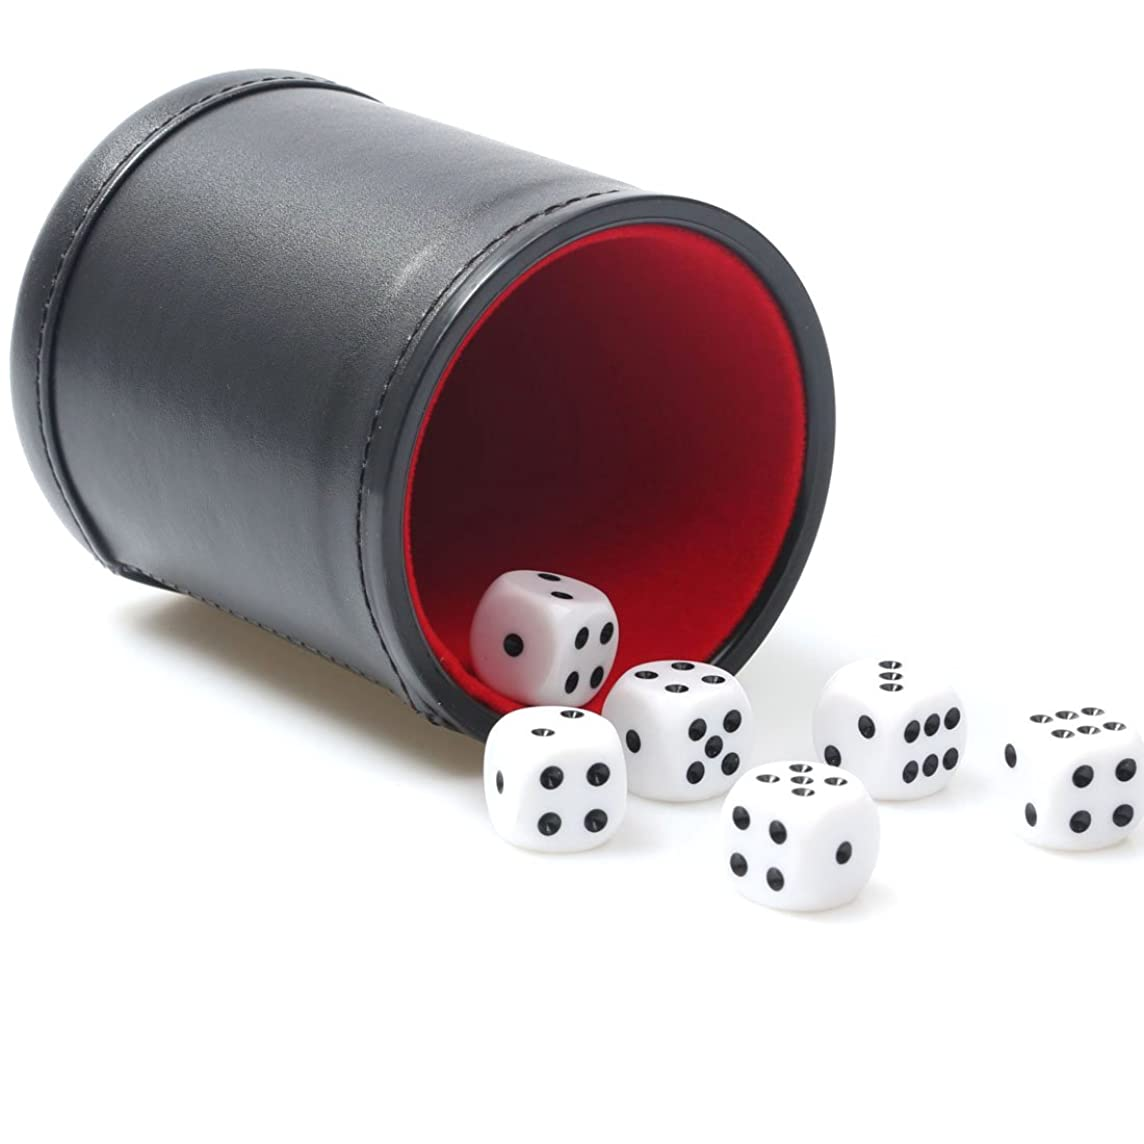 RERIVER Felt Lined Pu Leather Dice Cup Set with 6 Dot Dices (Black, Pack of 1)